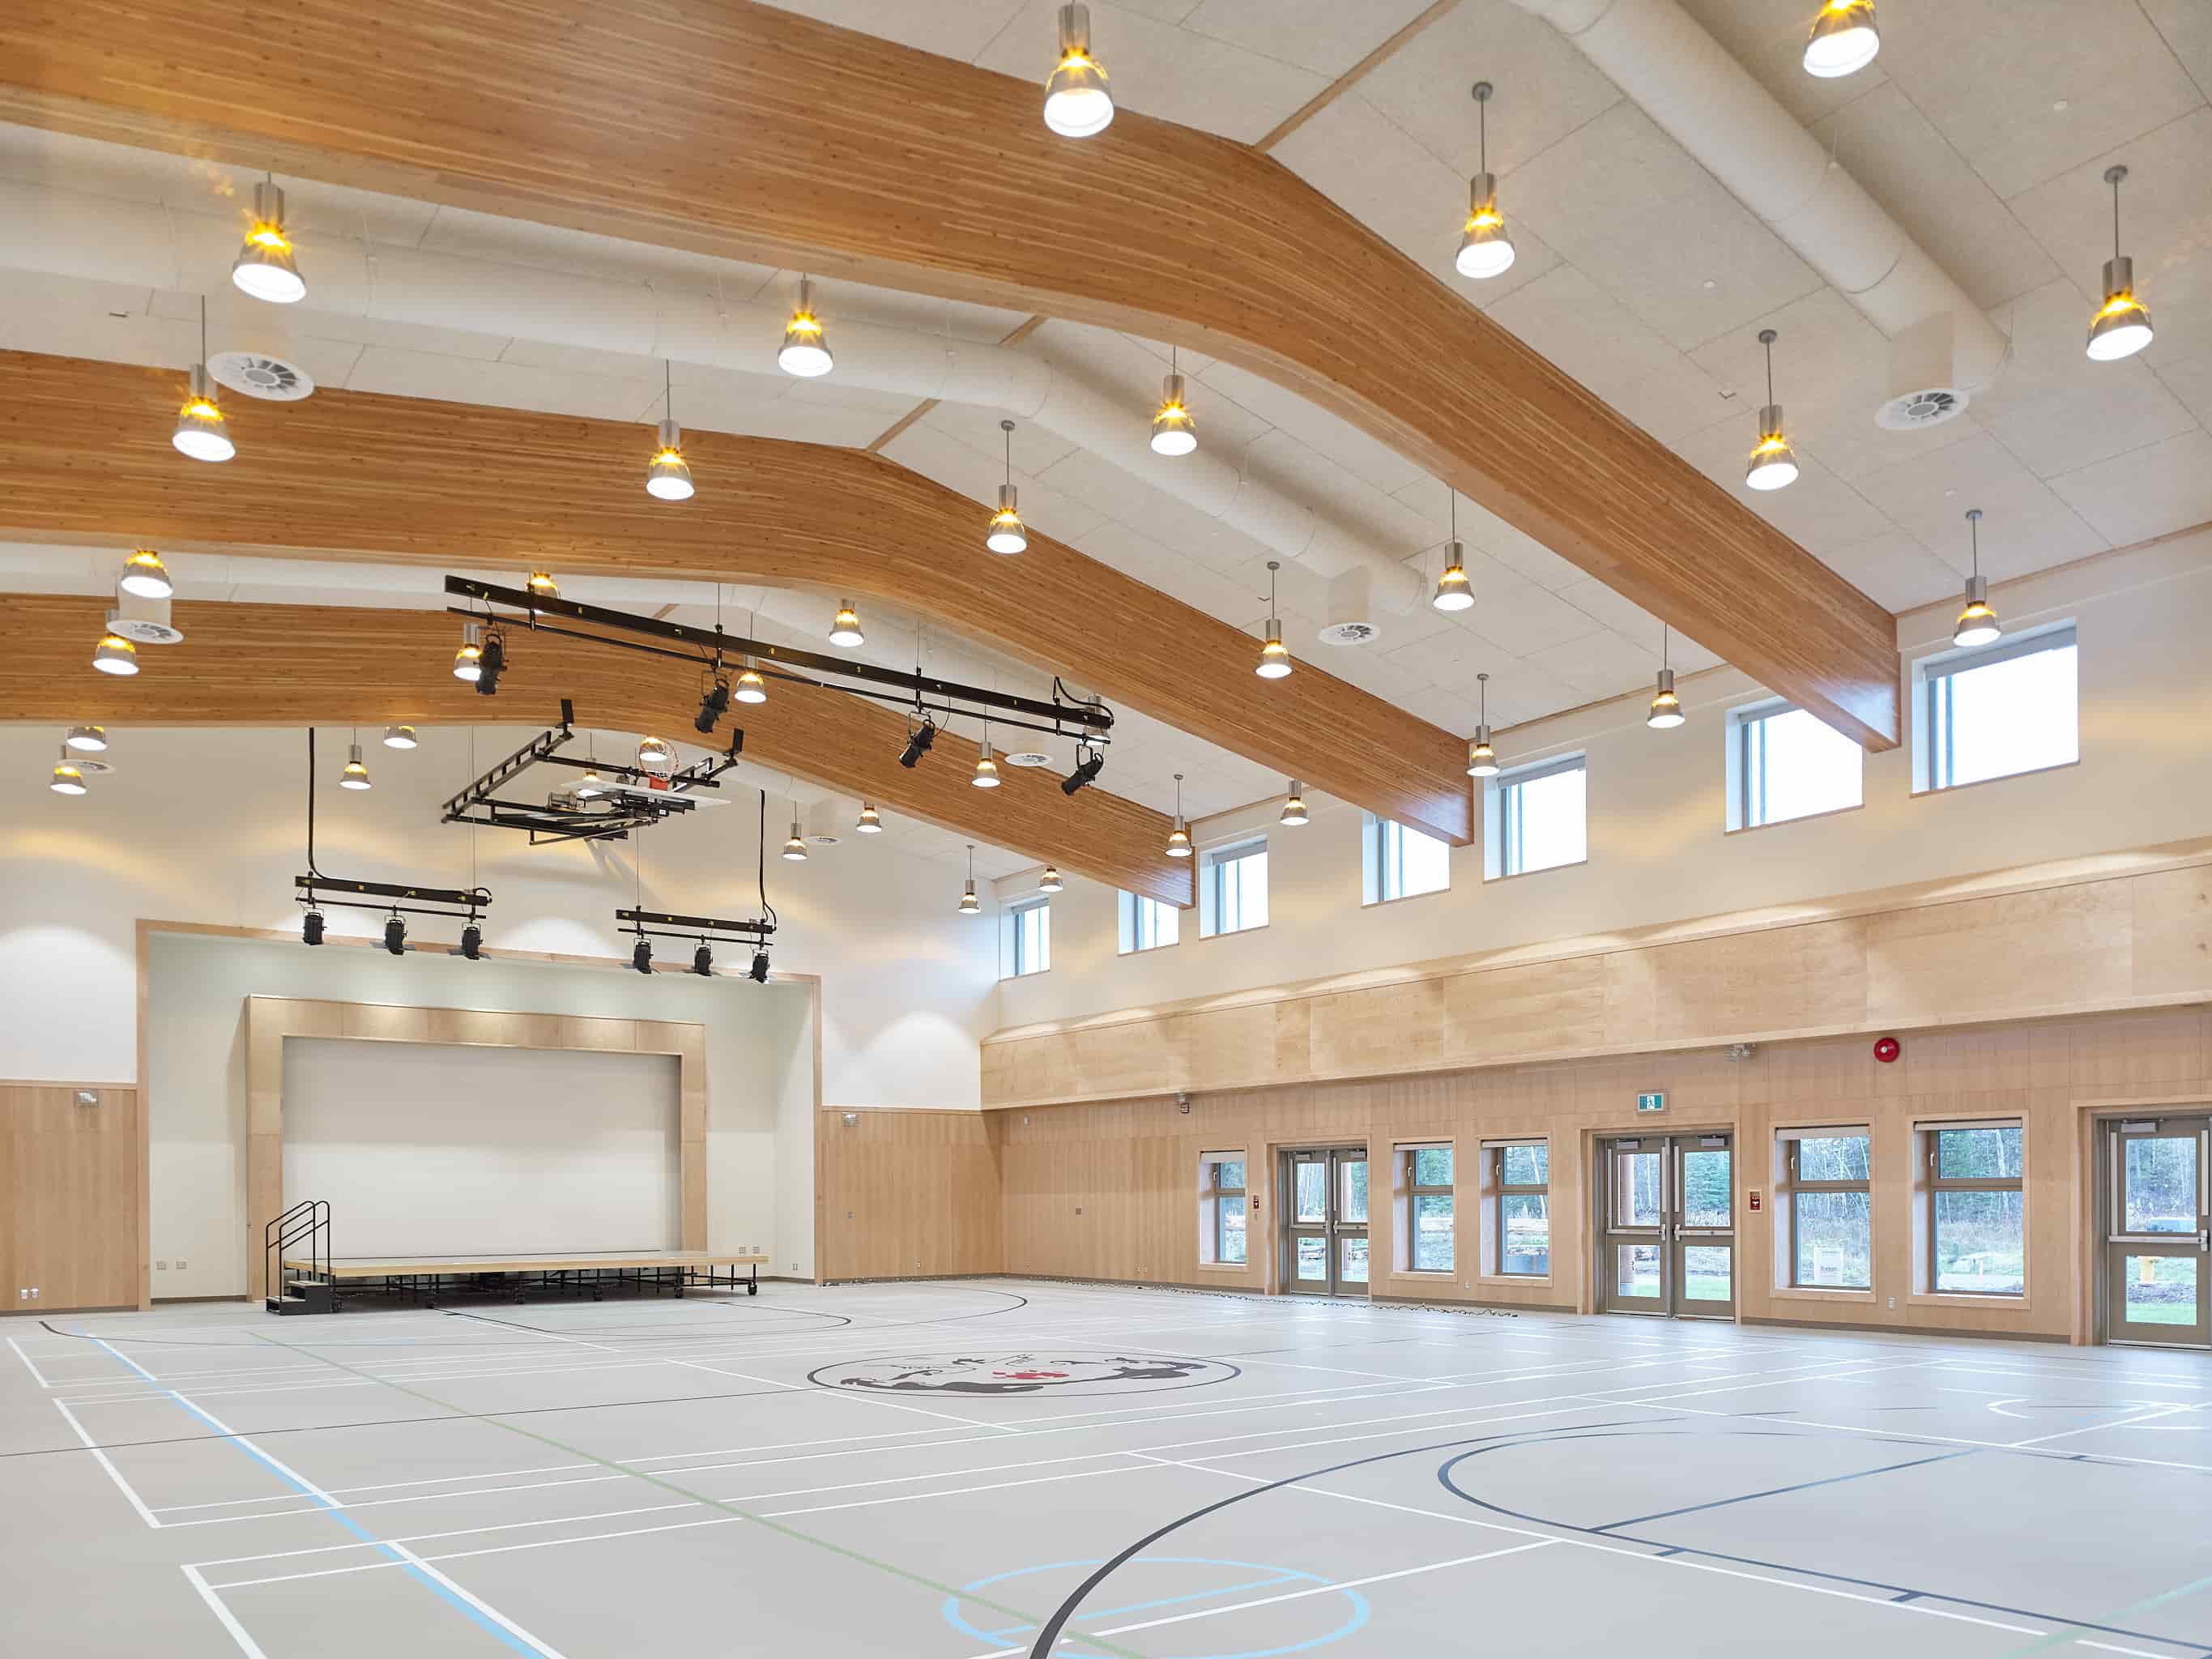 gym with timber beams, t-bar ceilings